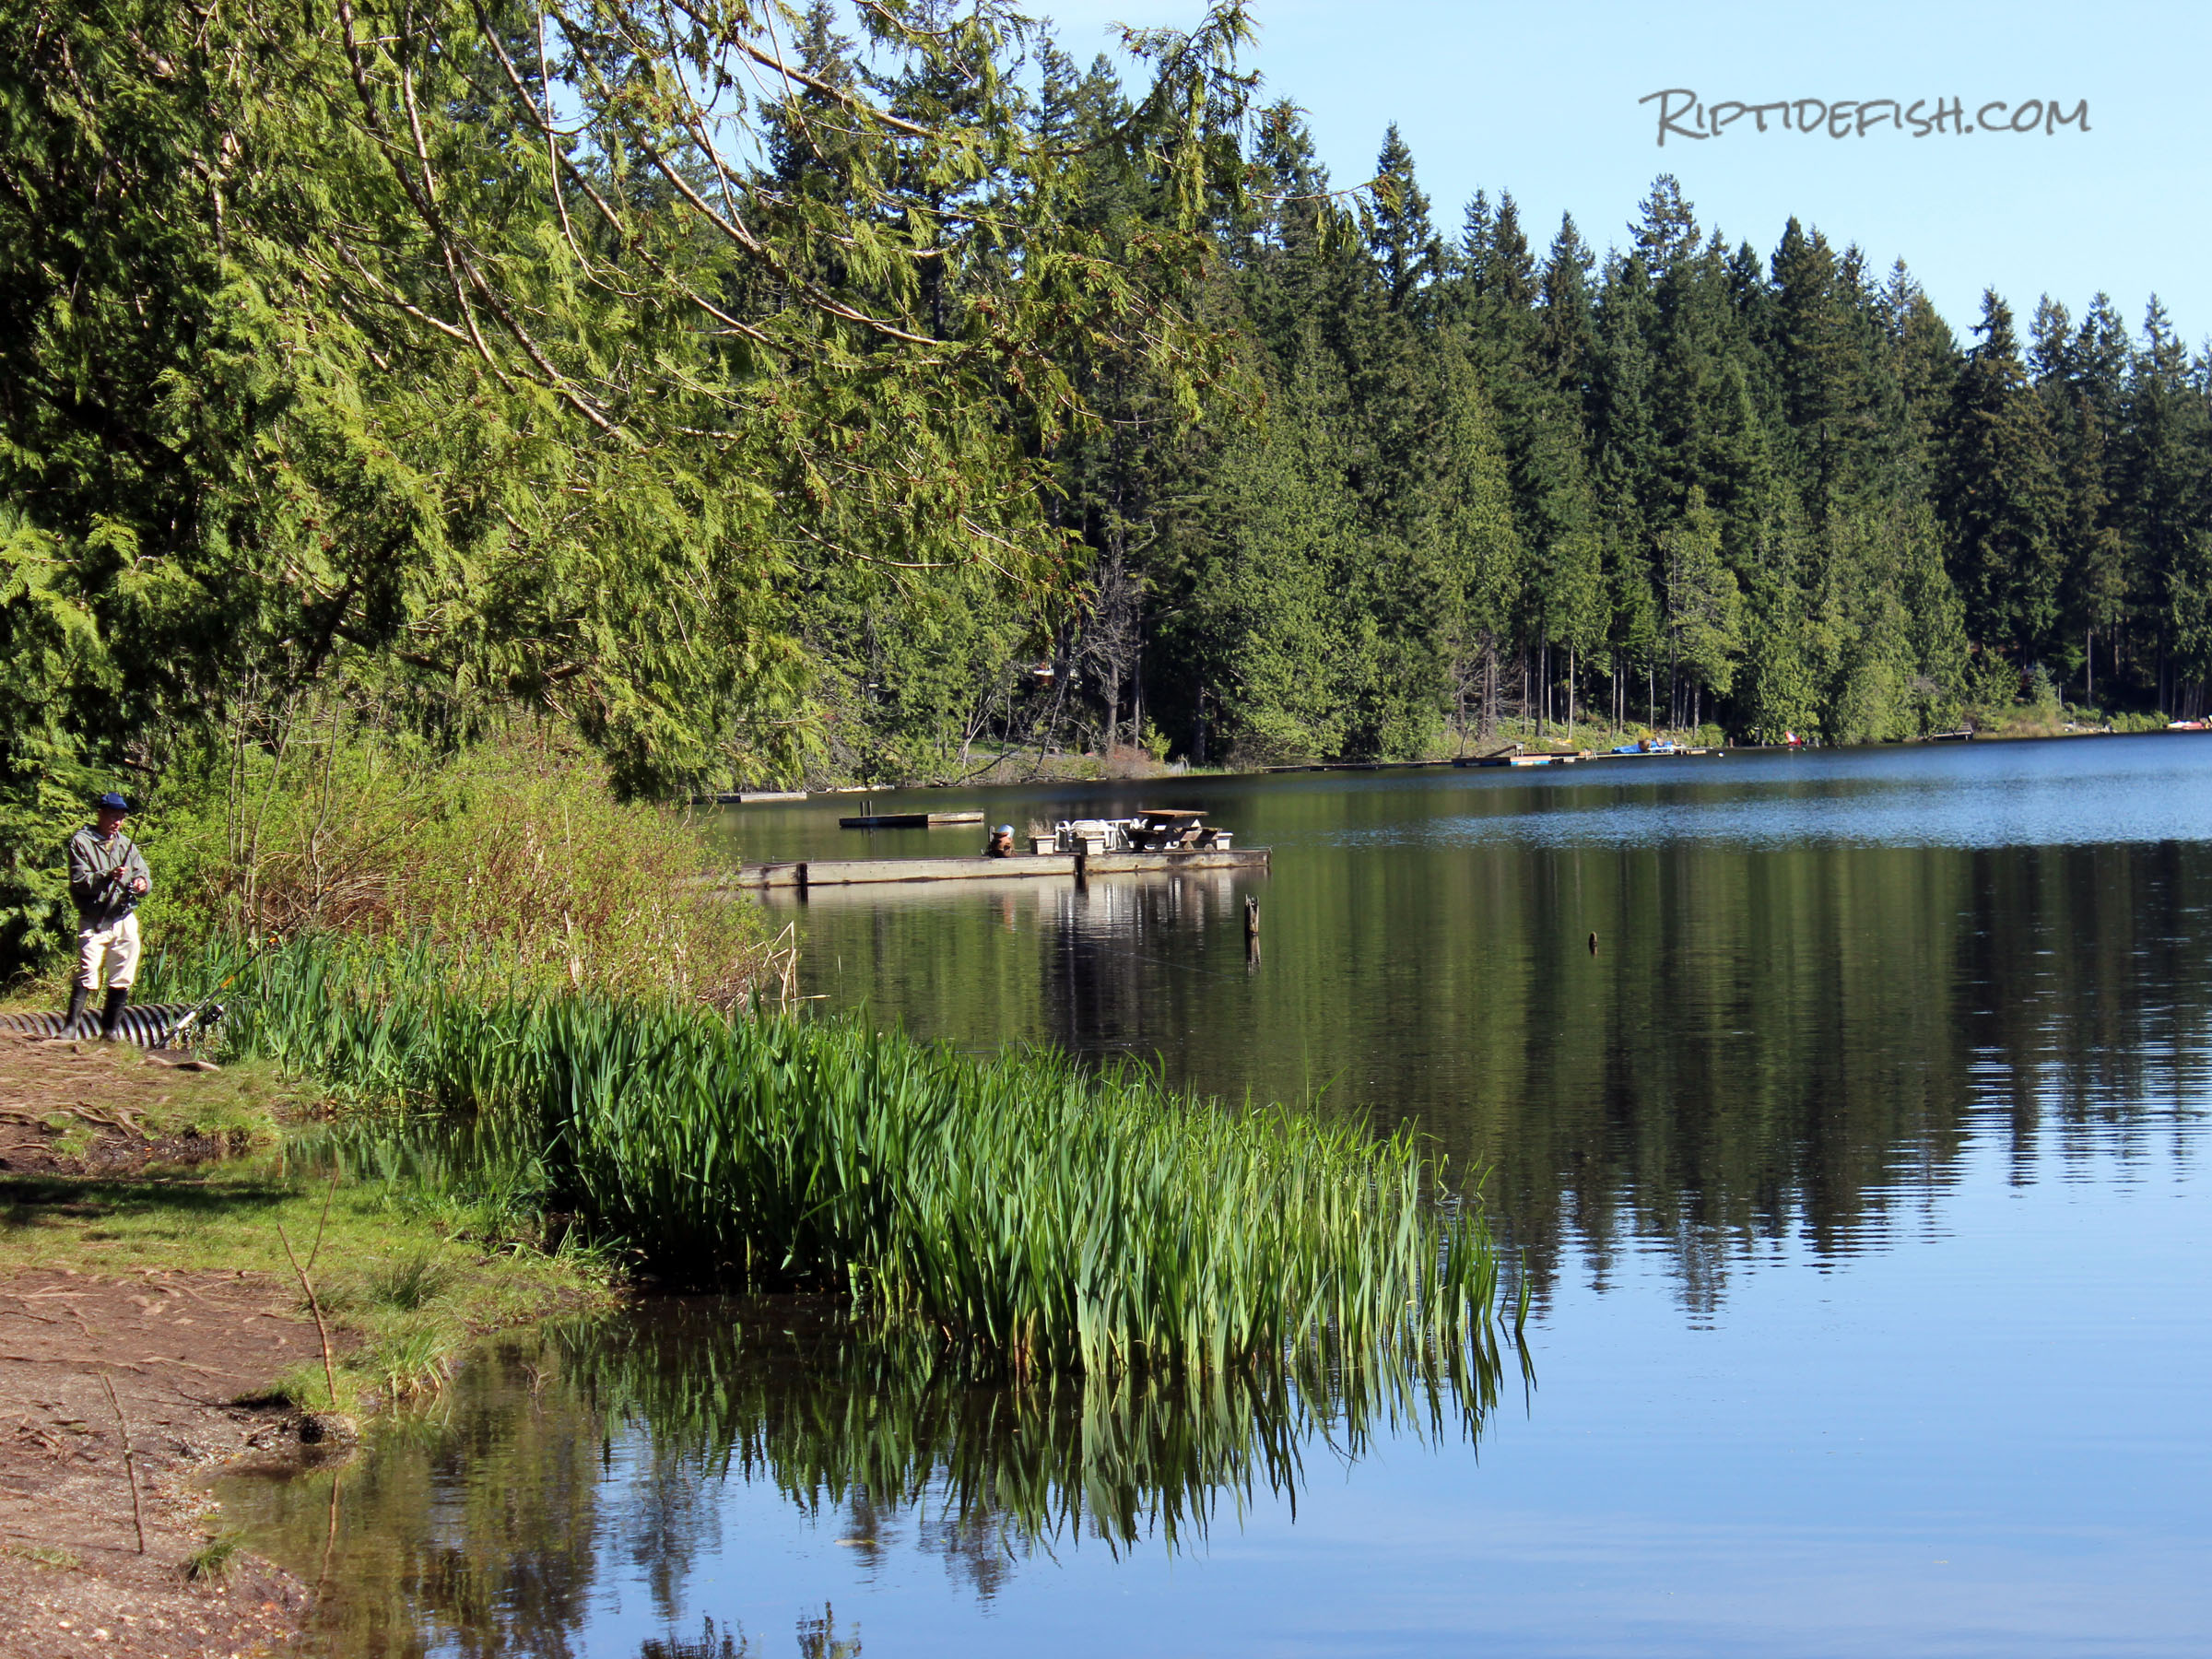 14 Awesome Fishing Lakes in the Snoqualmie Valley - Riptidefish